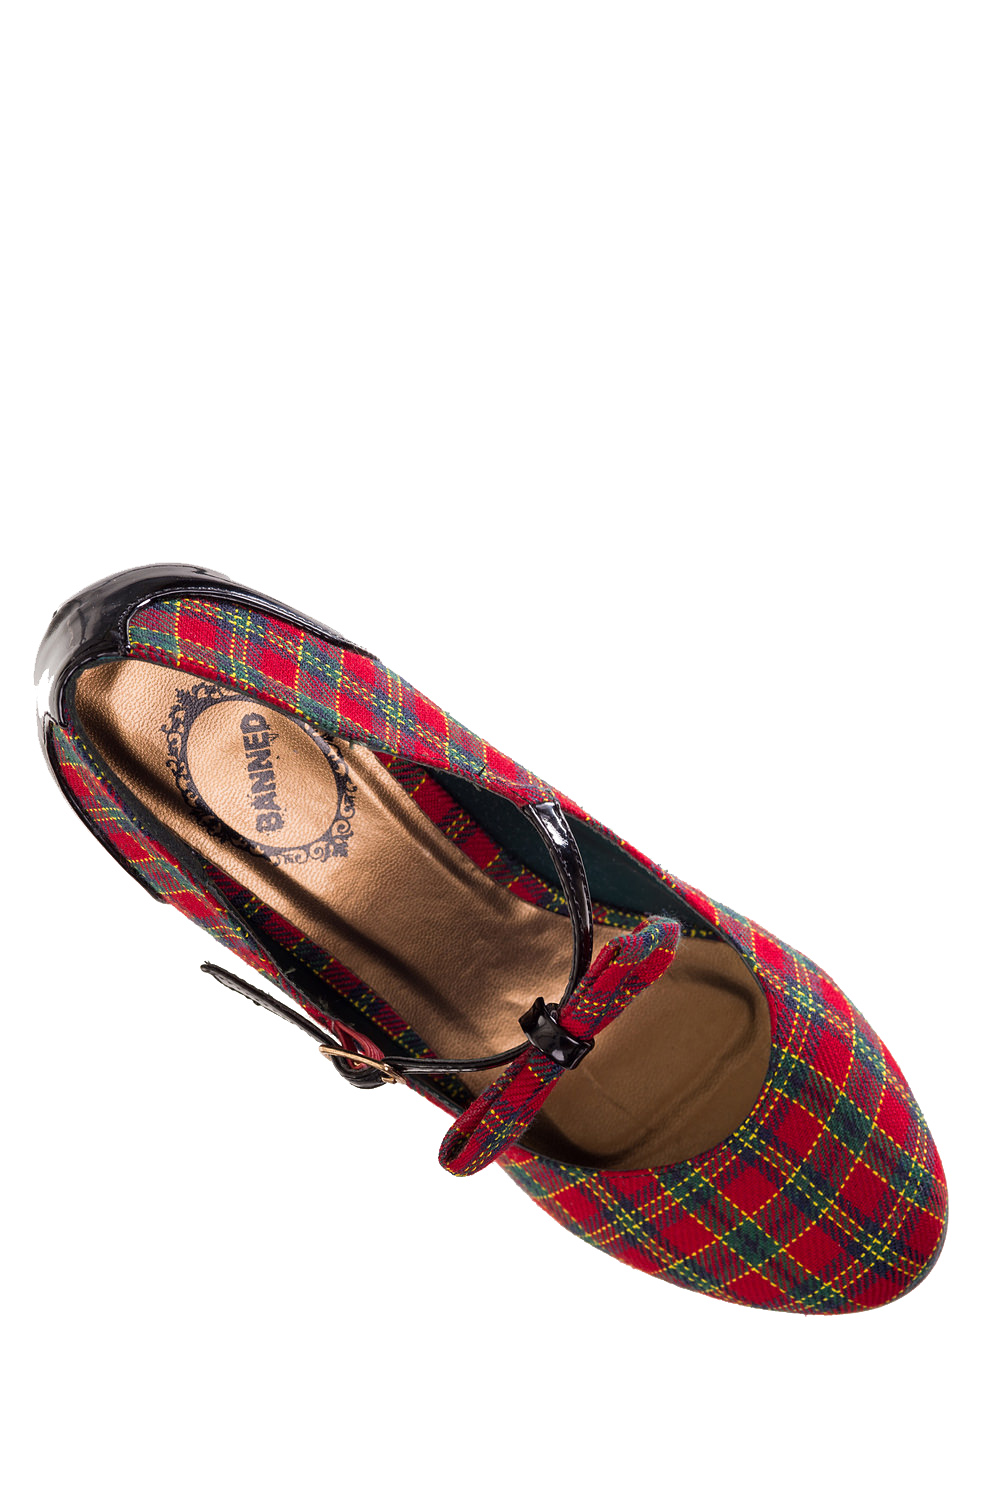 Dancing Days Dorothy 50s Tartan Shoes